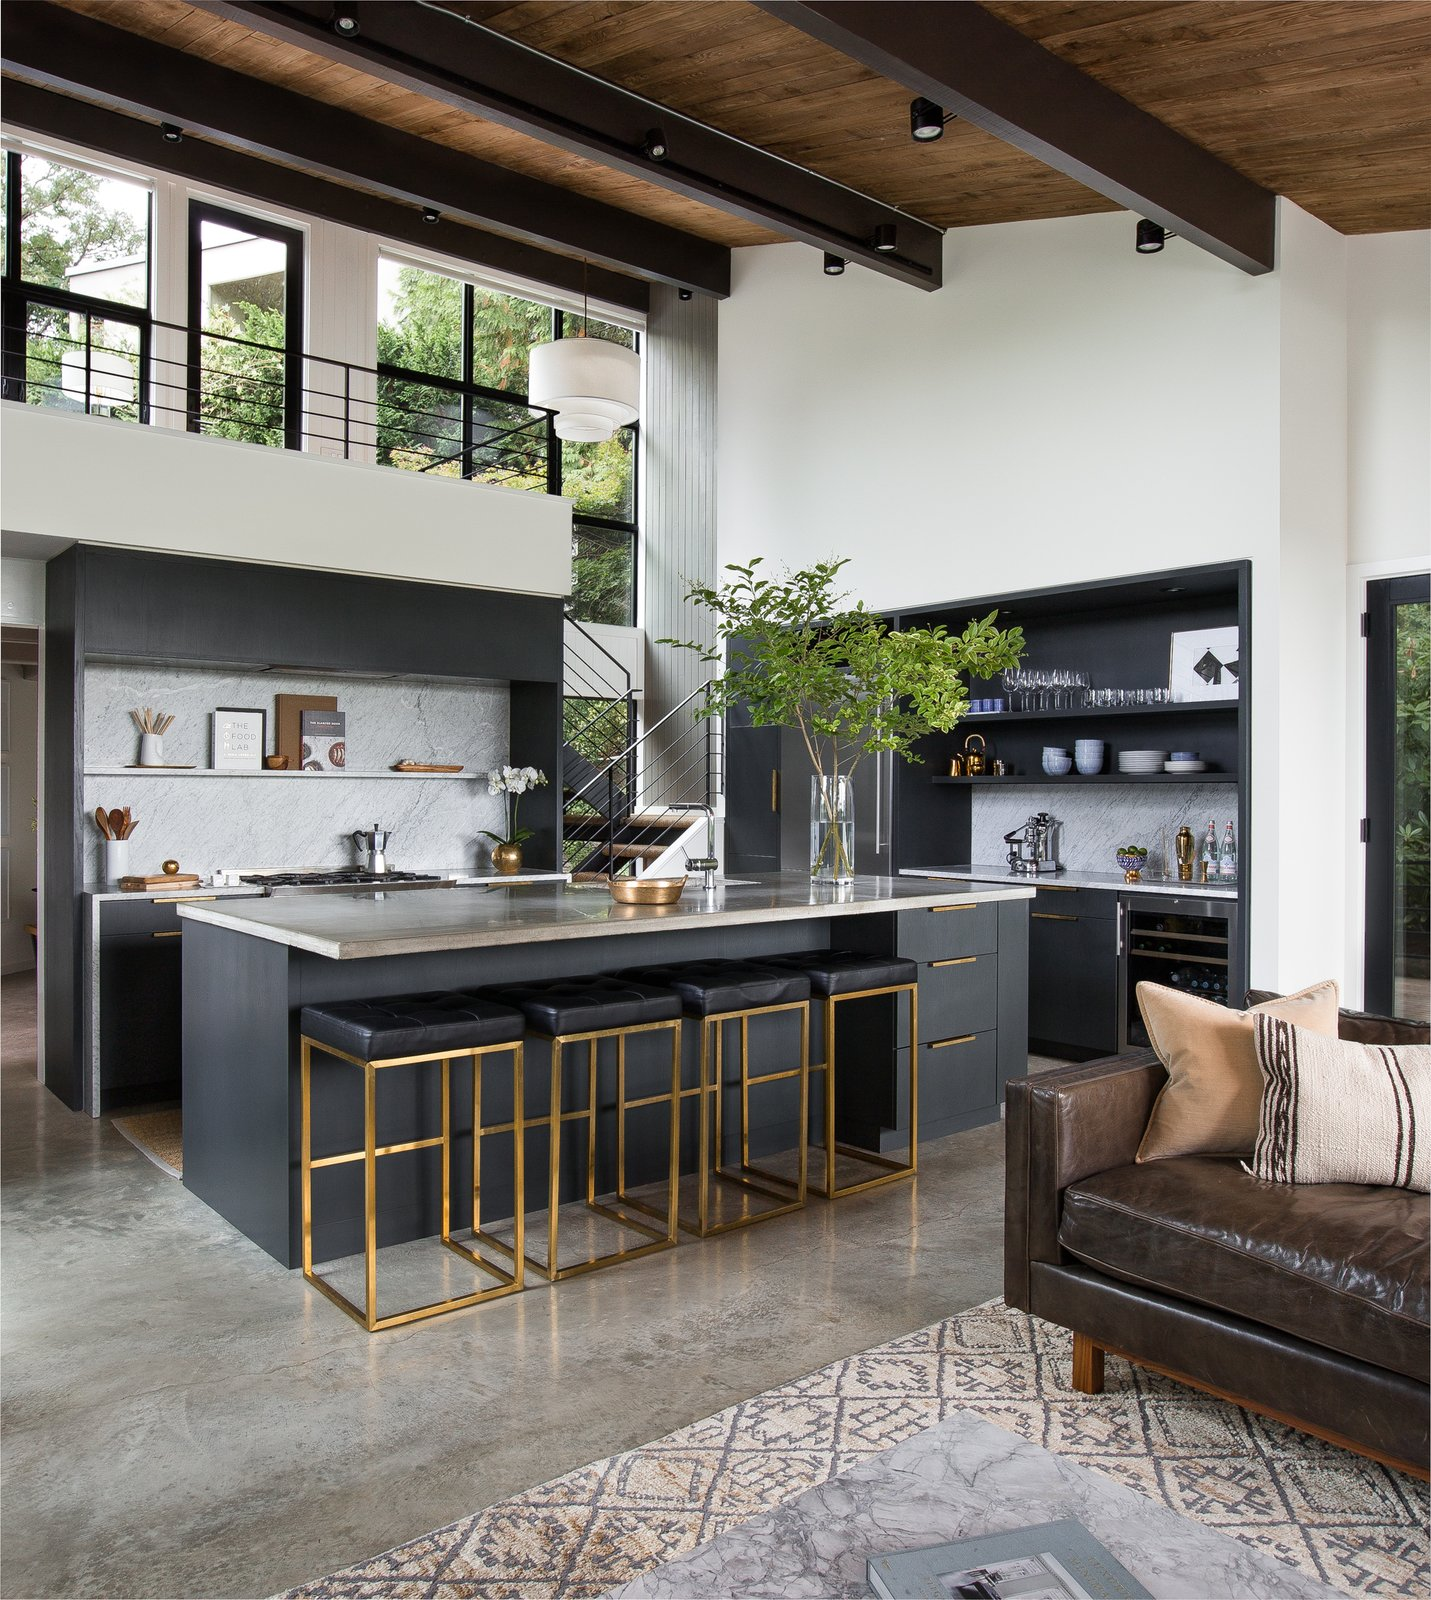 Montlake House kitchen with island bar and concrete floors